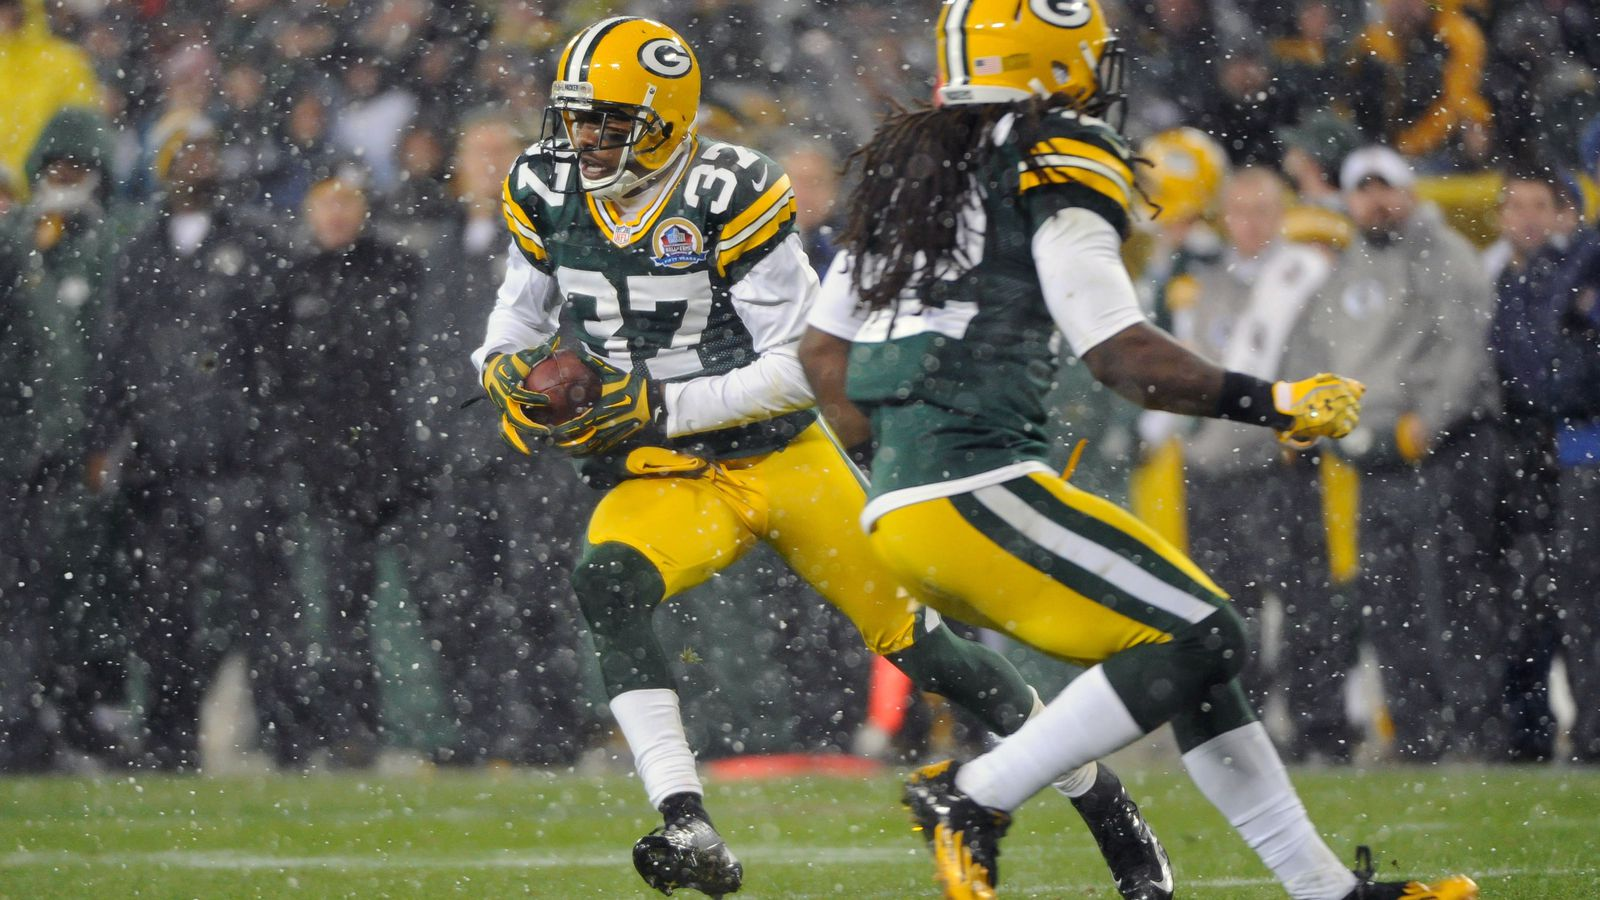 lions vs packers - photo #12